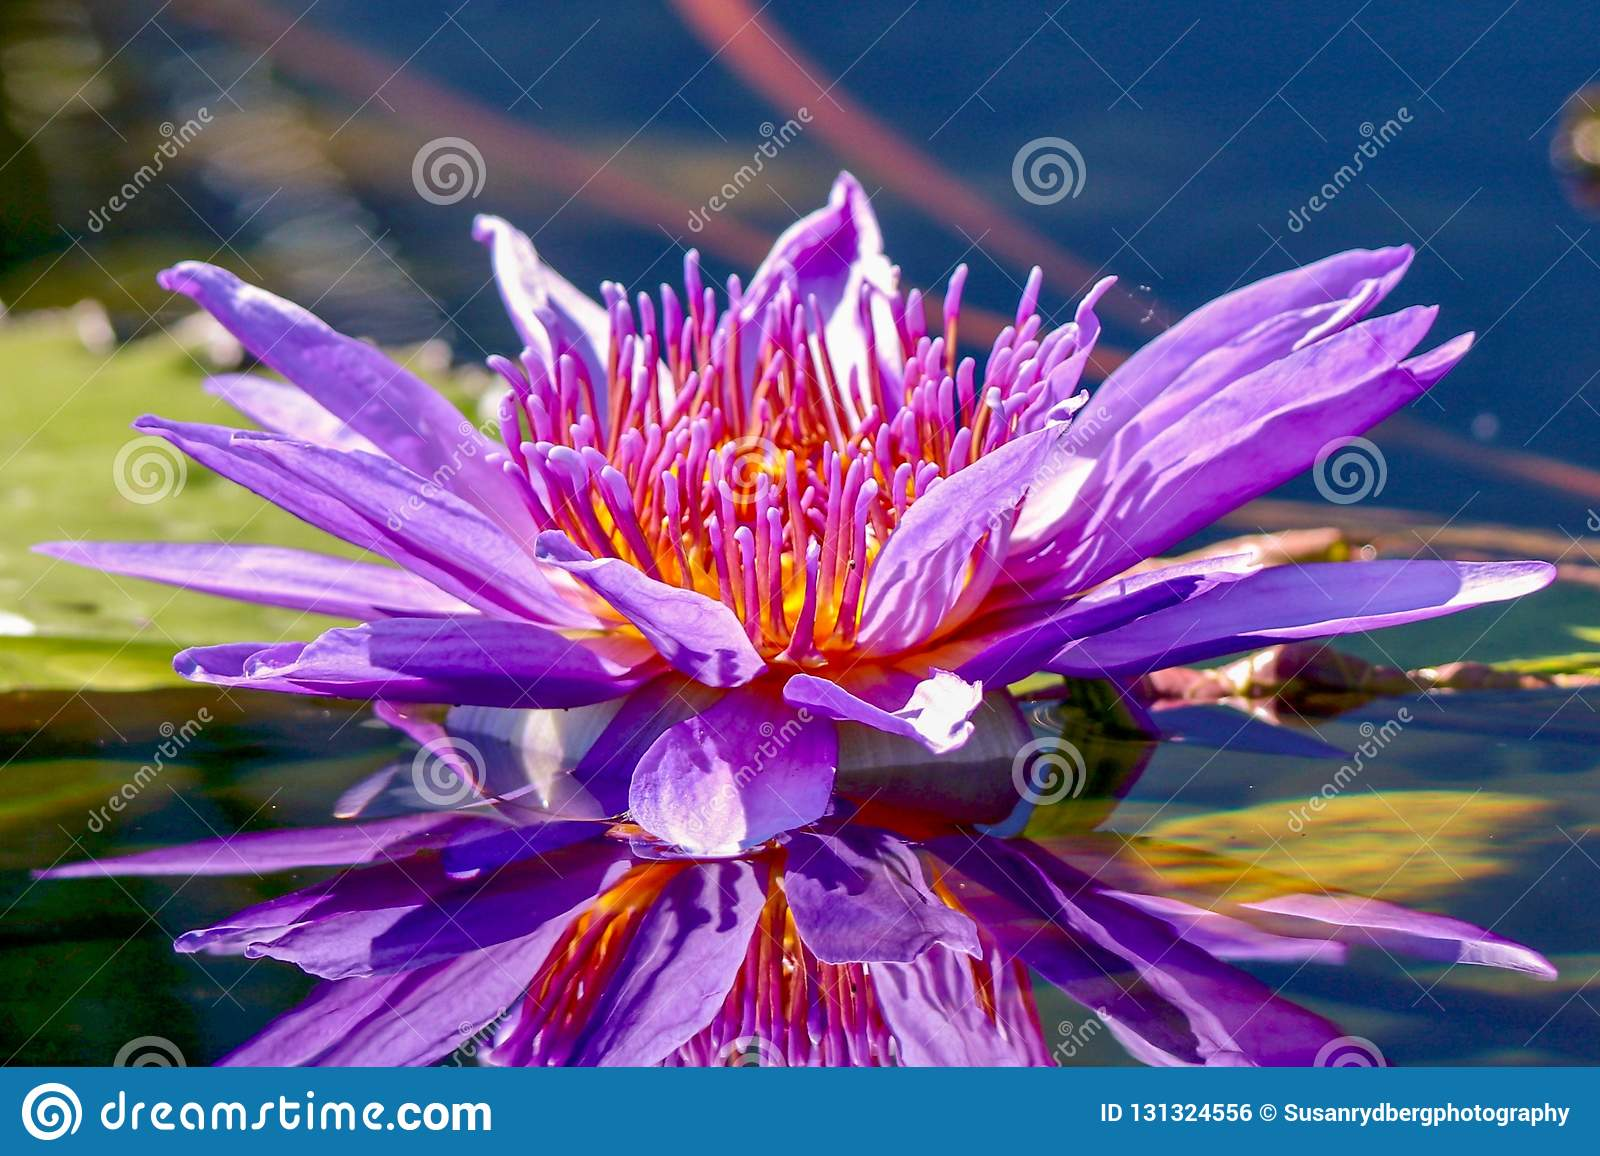 Egyptian Lotus Flower And Reflection In Pond Stock Photo Image Of